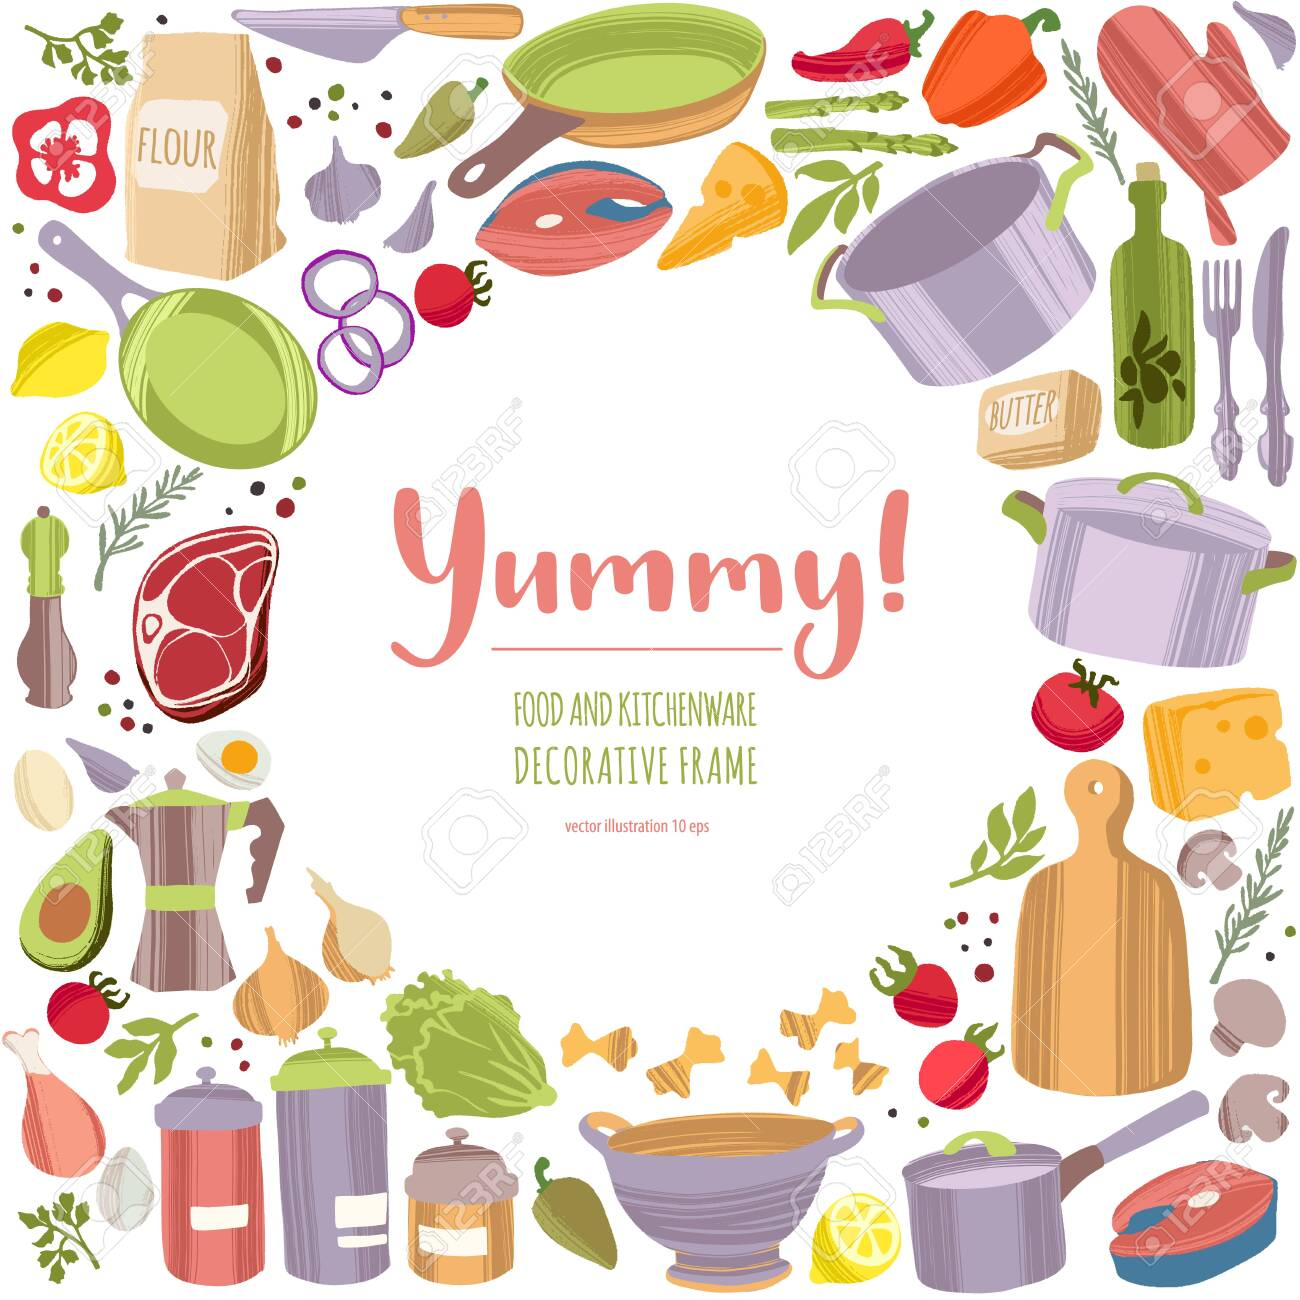 Kitchen tools and healthy food decorative frame. - 144451049